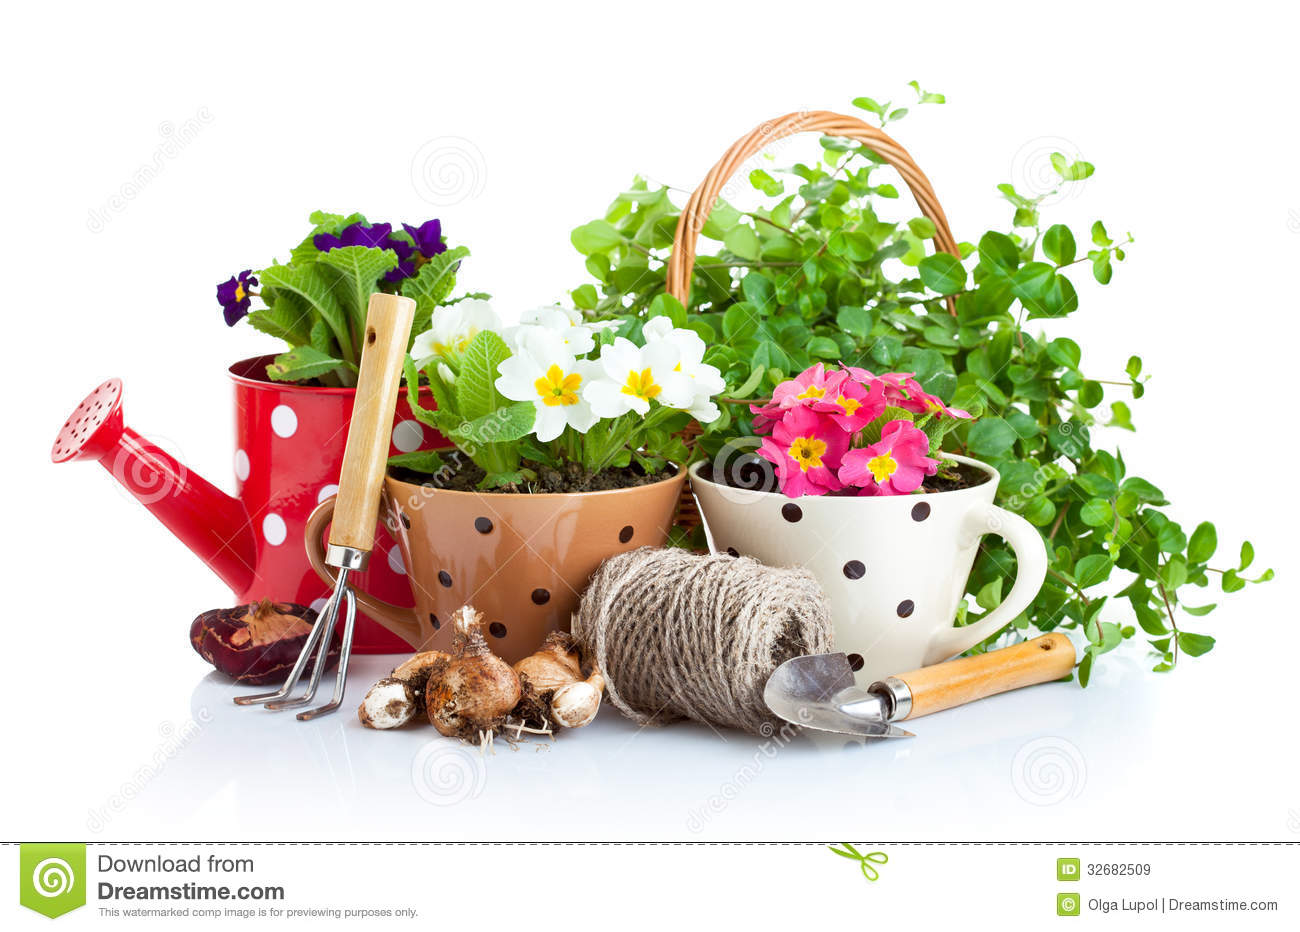 Tools for gardening business plan